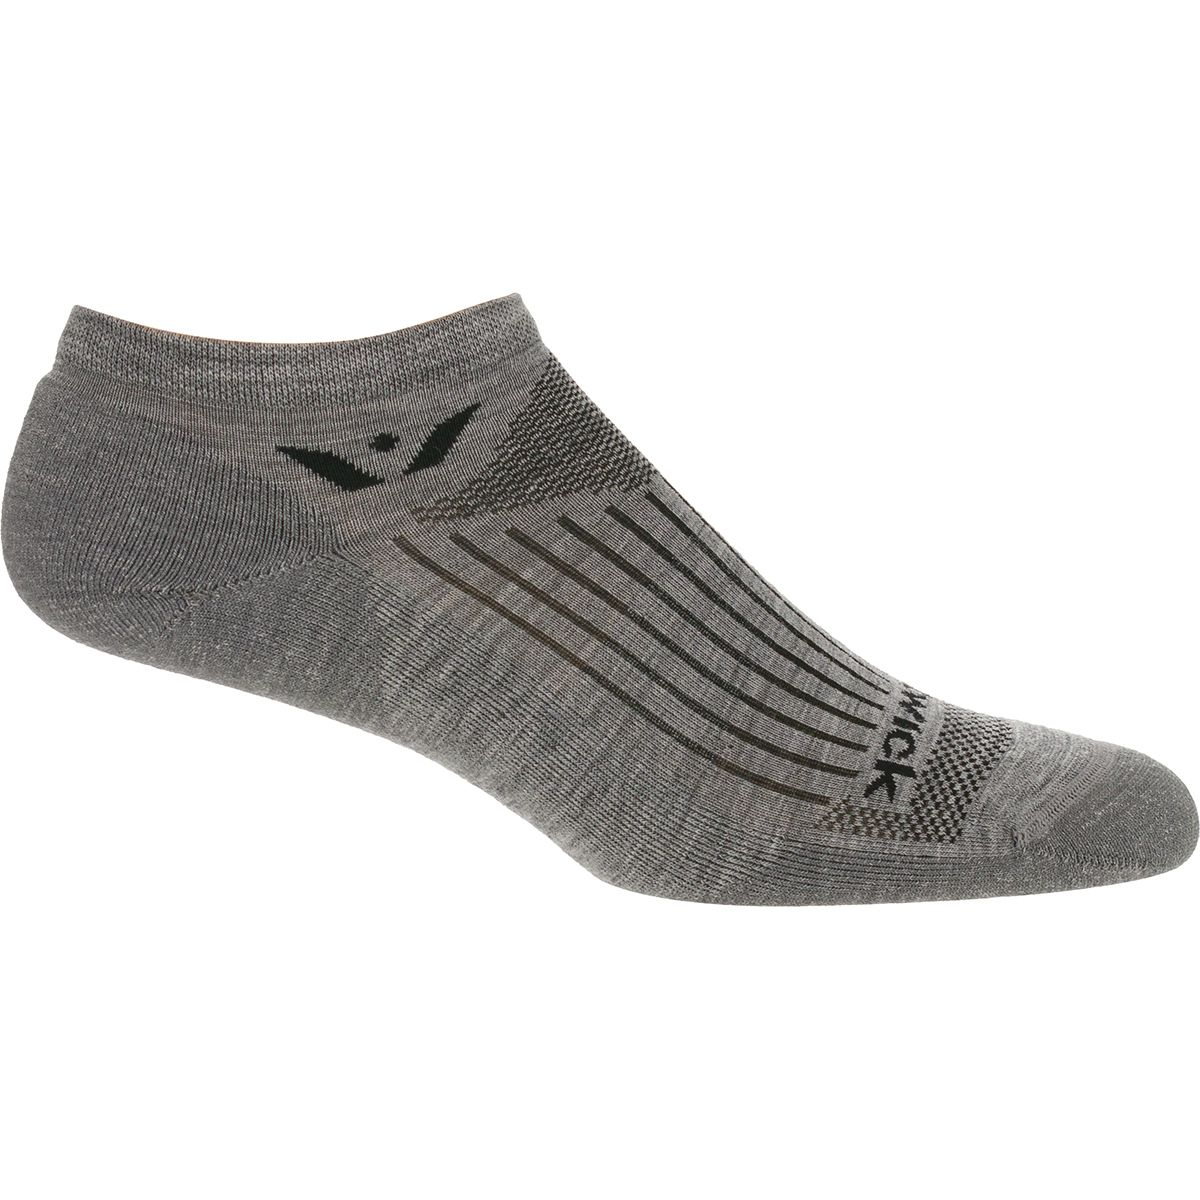 Swiftwick Pursuit Zero Sock